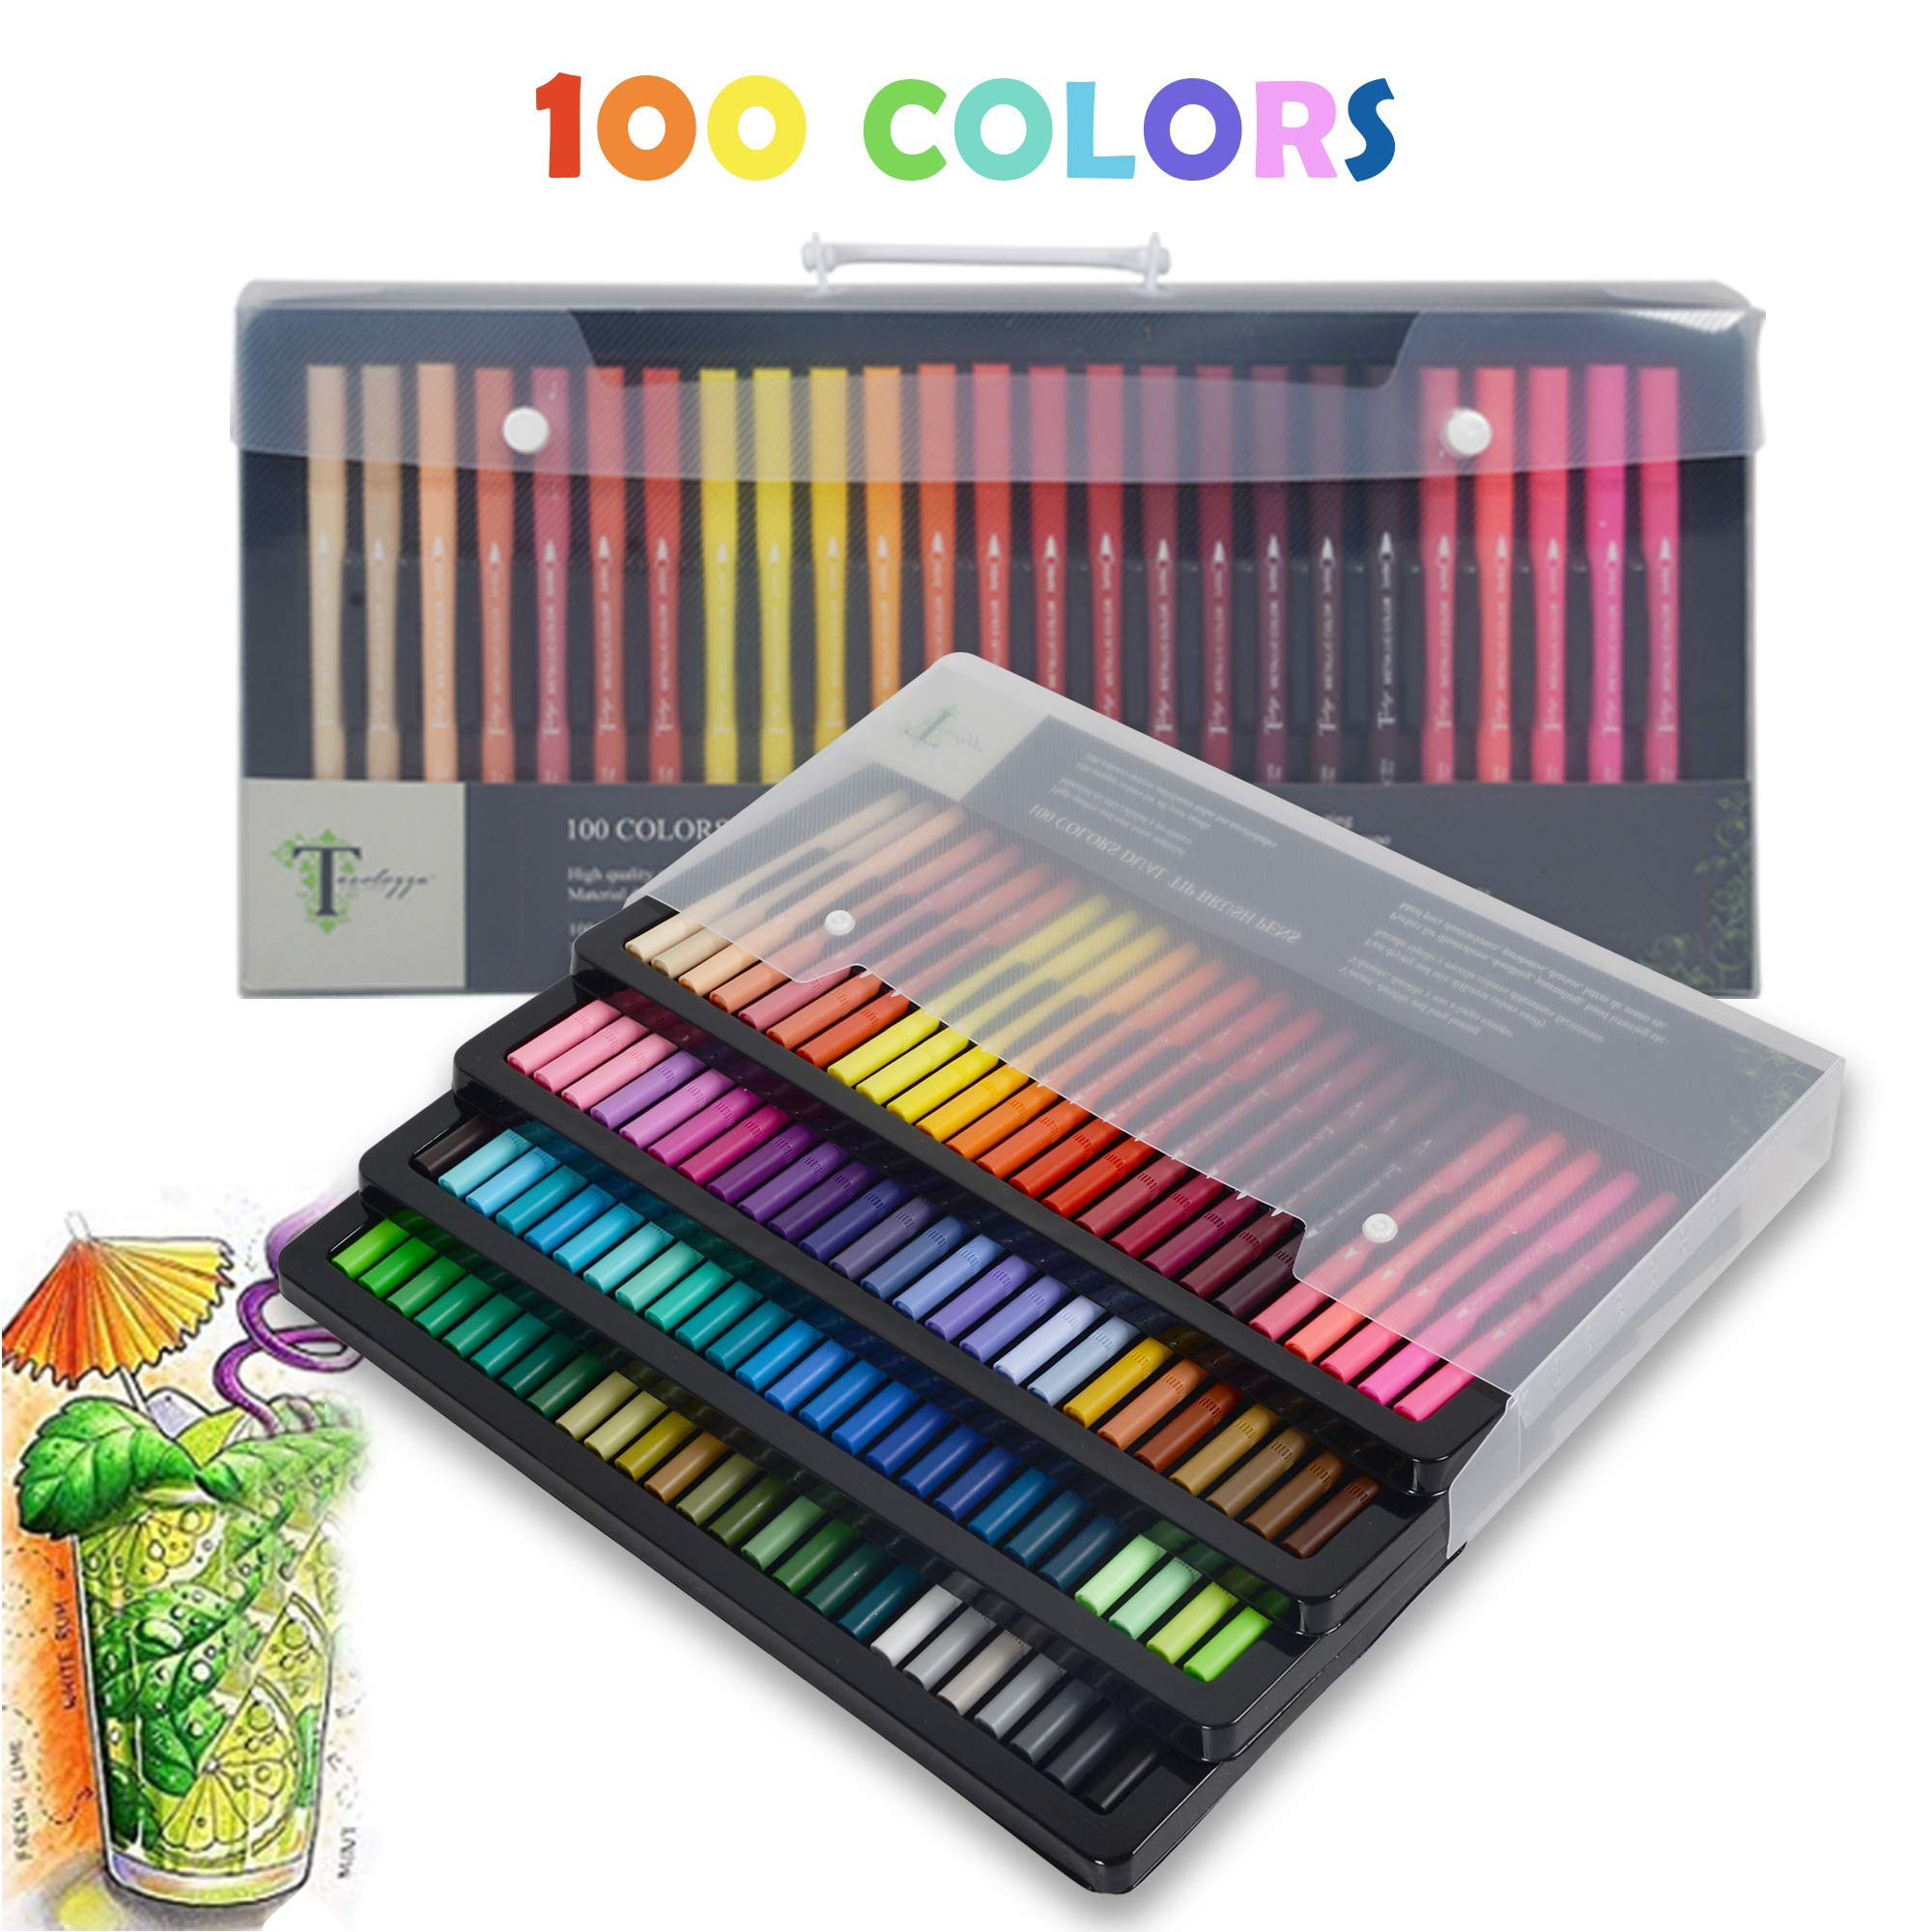 Tavolozza 100 Pcs Dual Tip Brush Pens Coloring Markers with Fineliner Tip 0.4 and Highlighters Brush Tip for Art Marker Brush Tips, Calligraphy, Manga, Bullet Journal by TAVOLOZZA